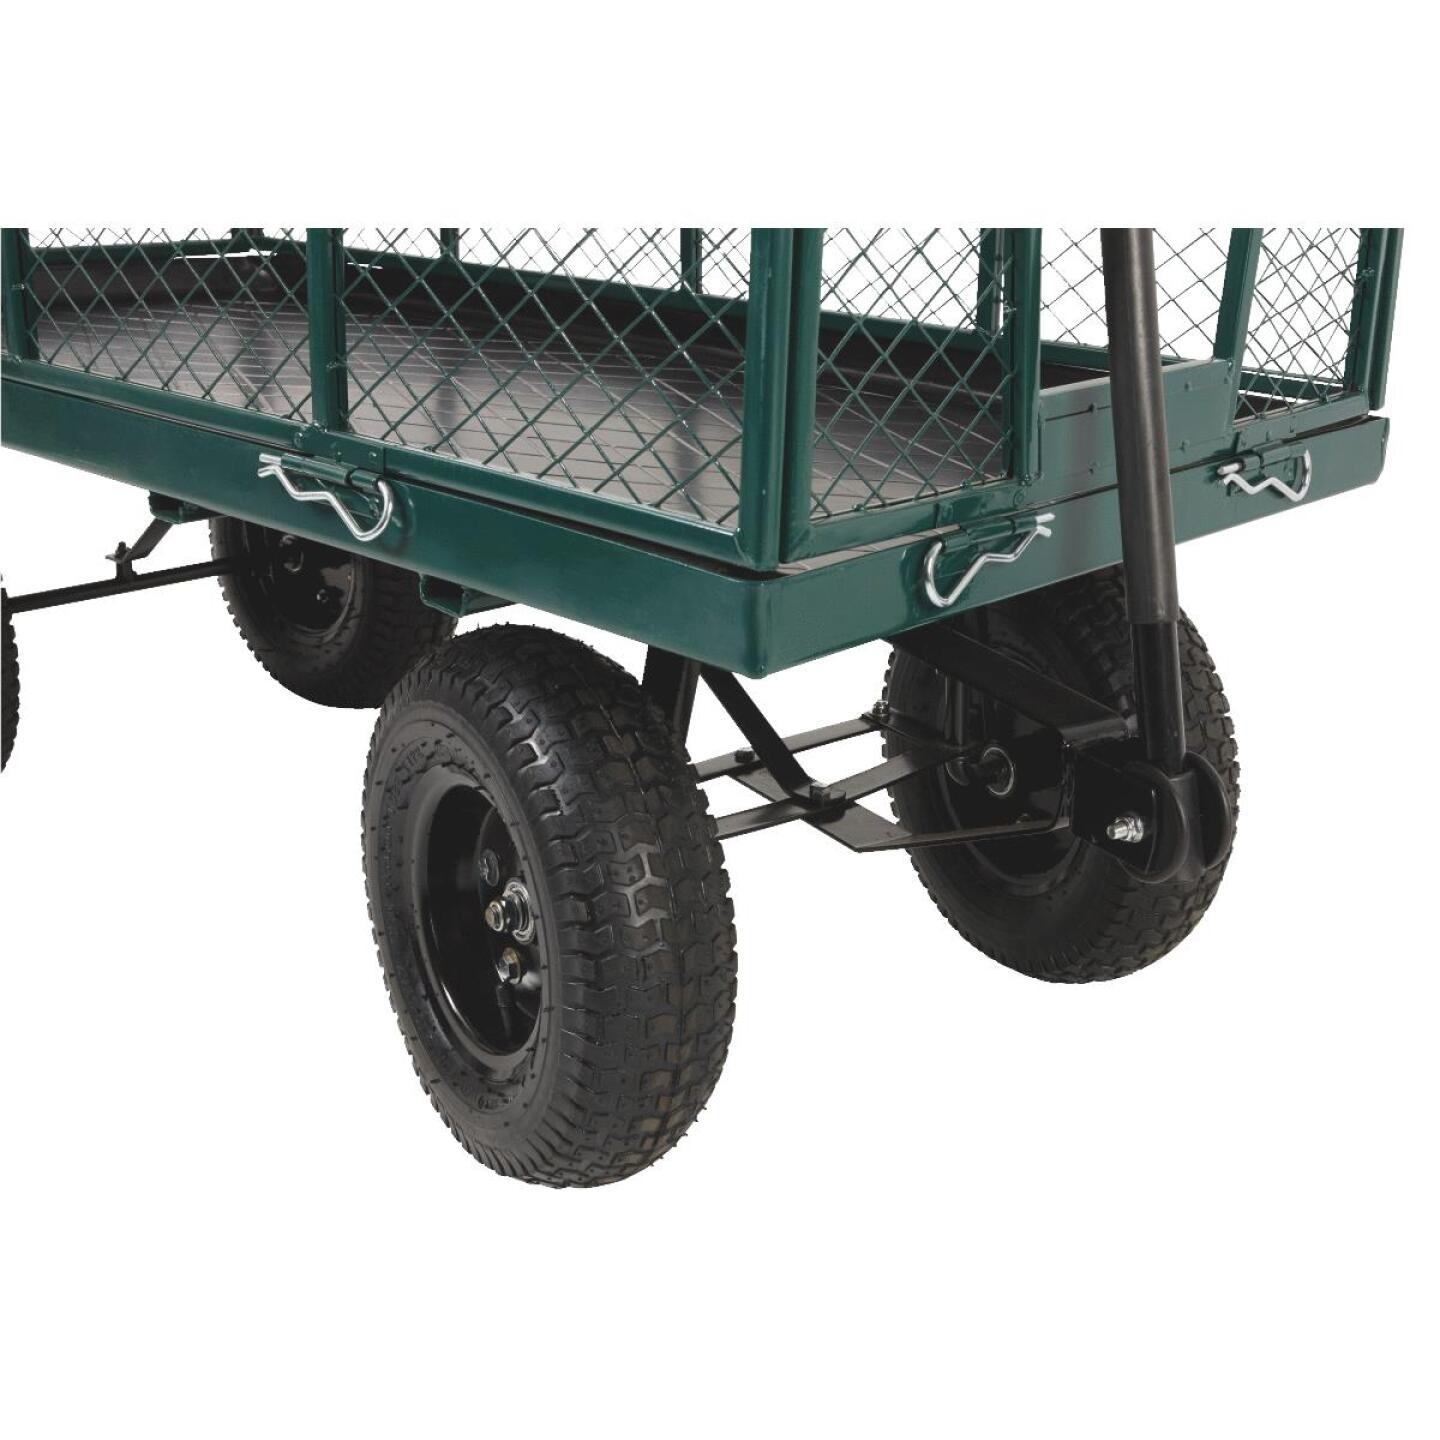 Best Garden 1000 Lb. Steel Garden Cart with Collapsible Sides Image 8